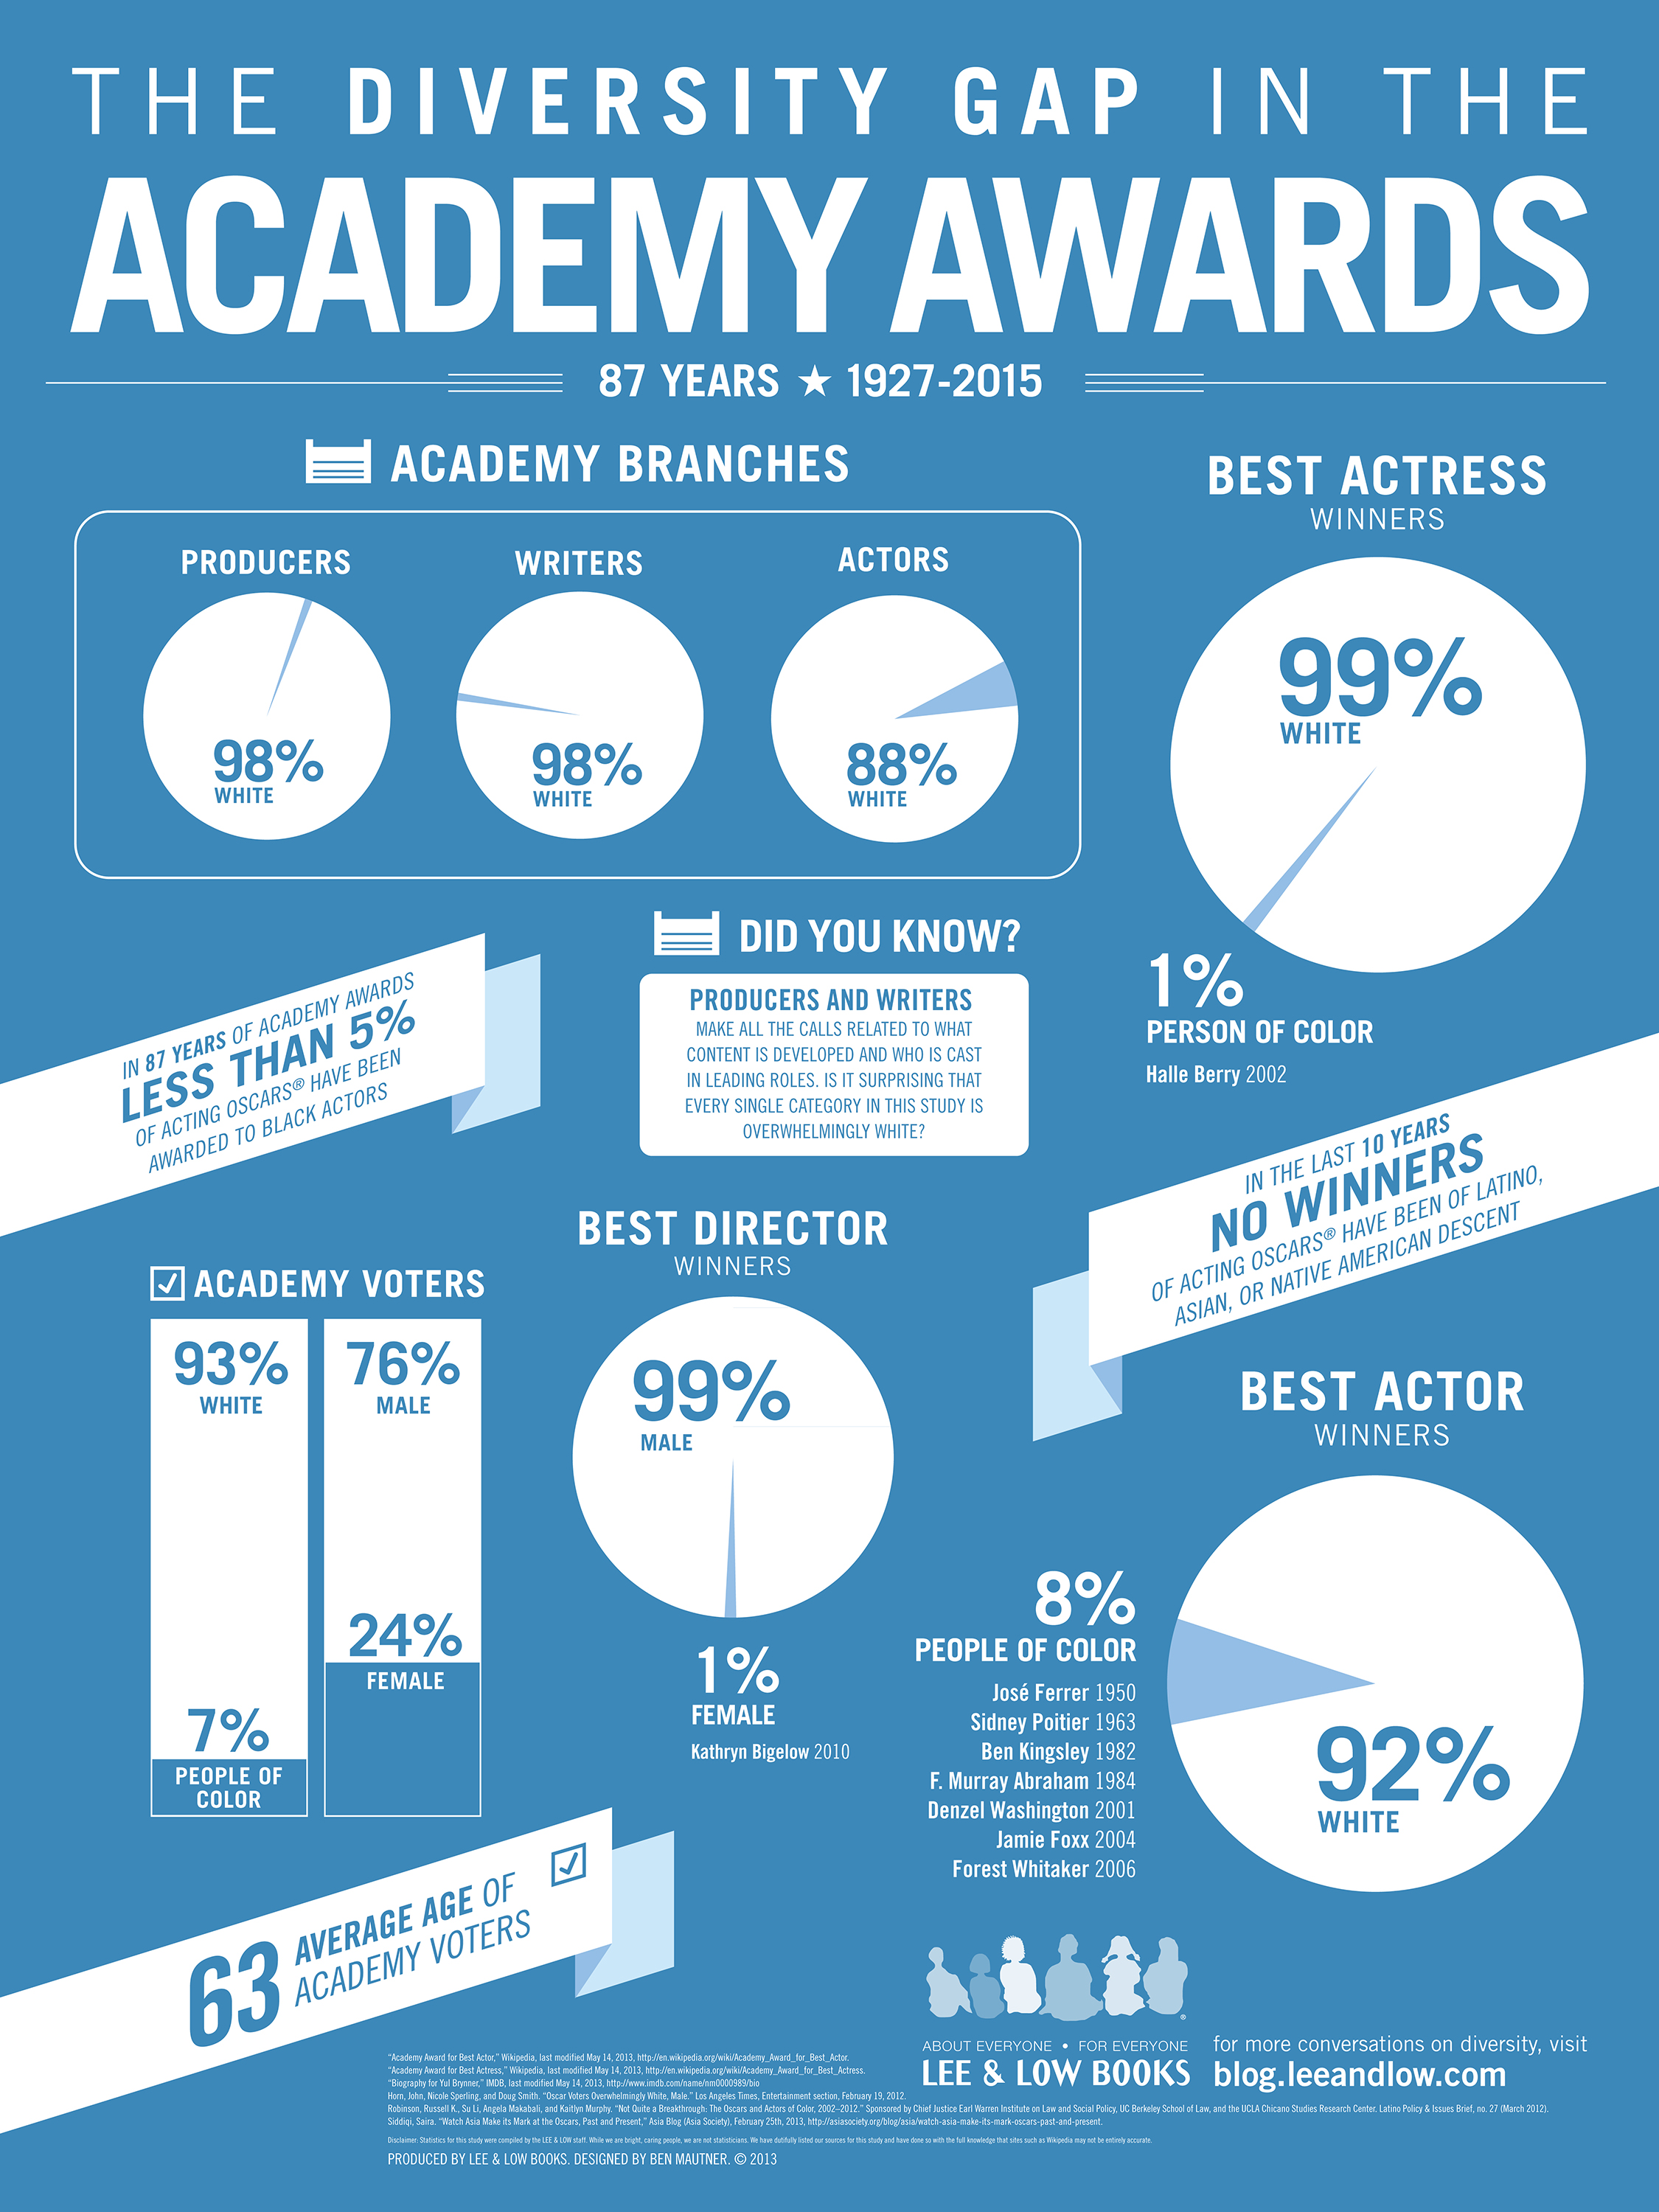 The Diversity Gap in the Academy Awards